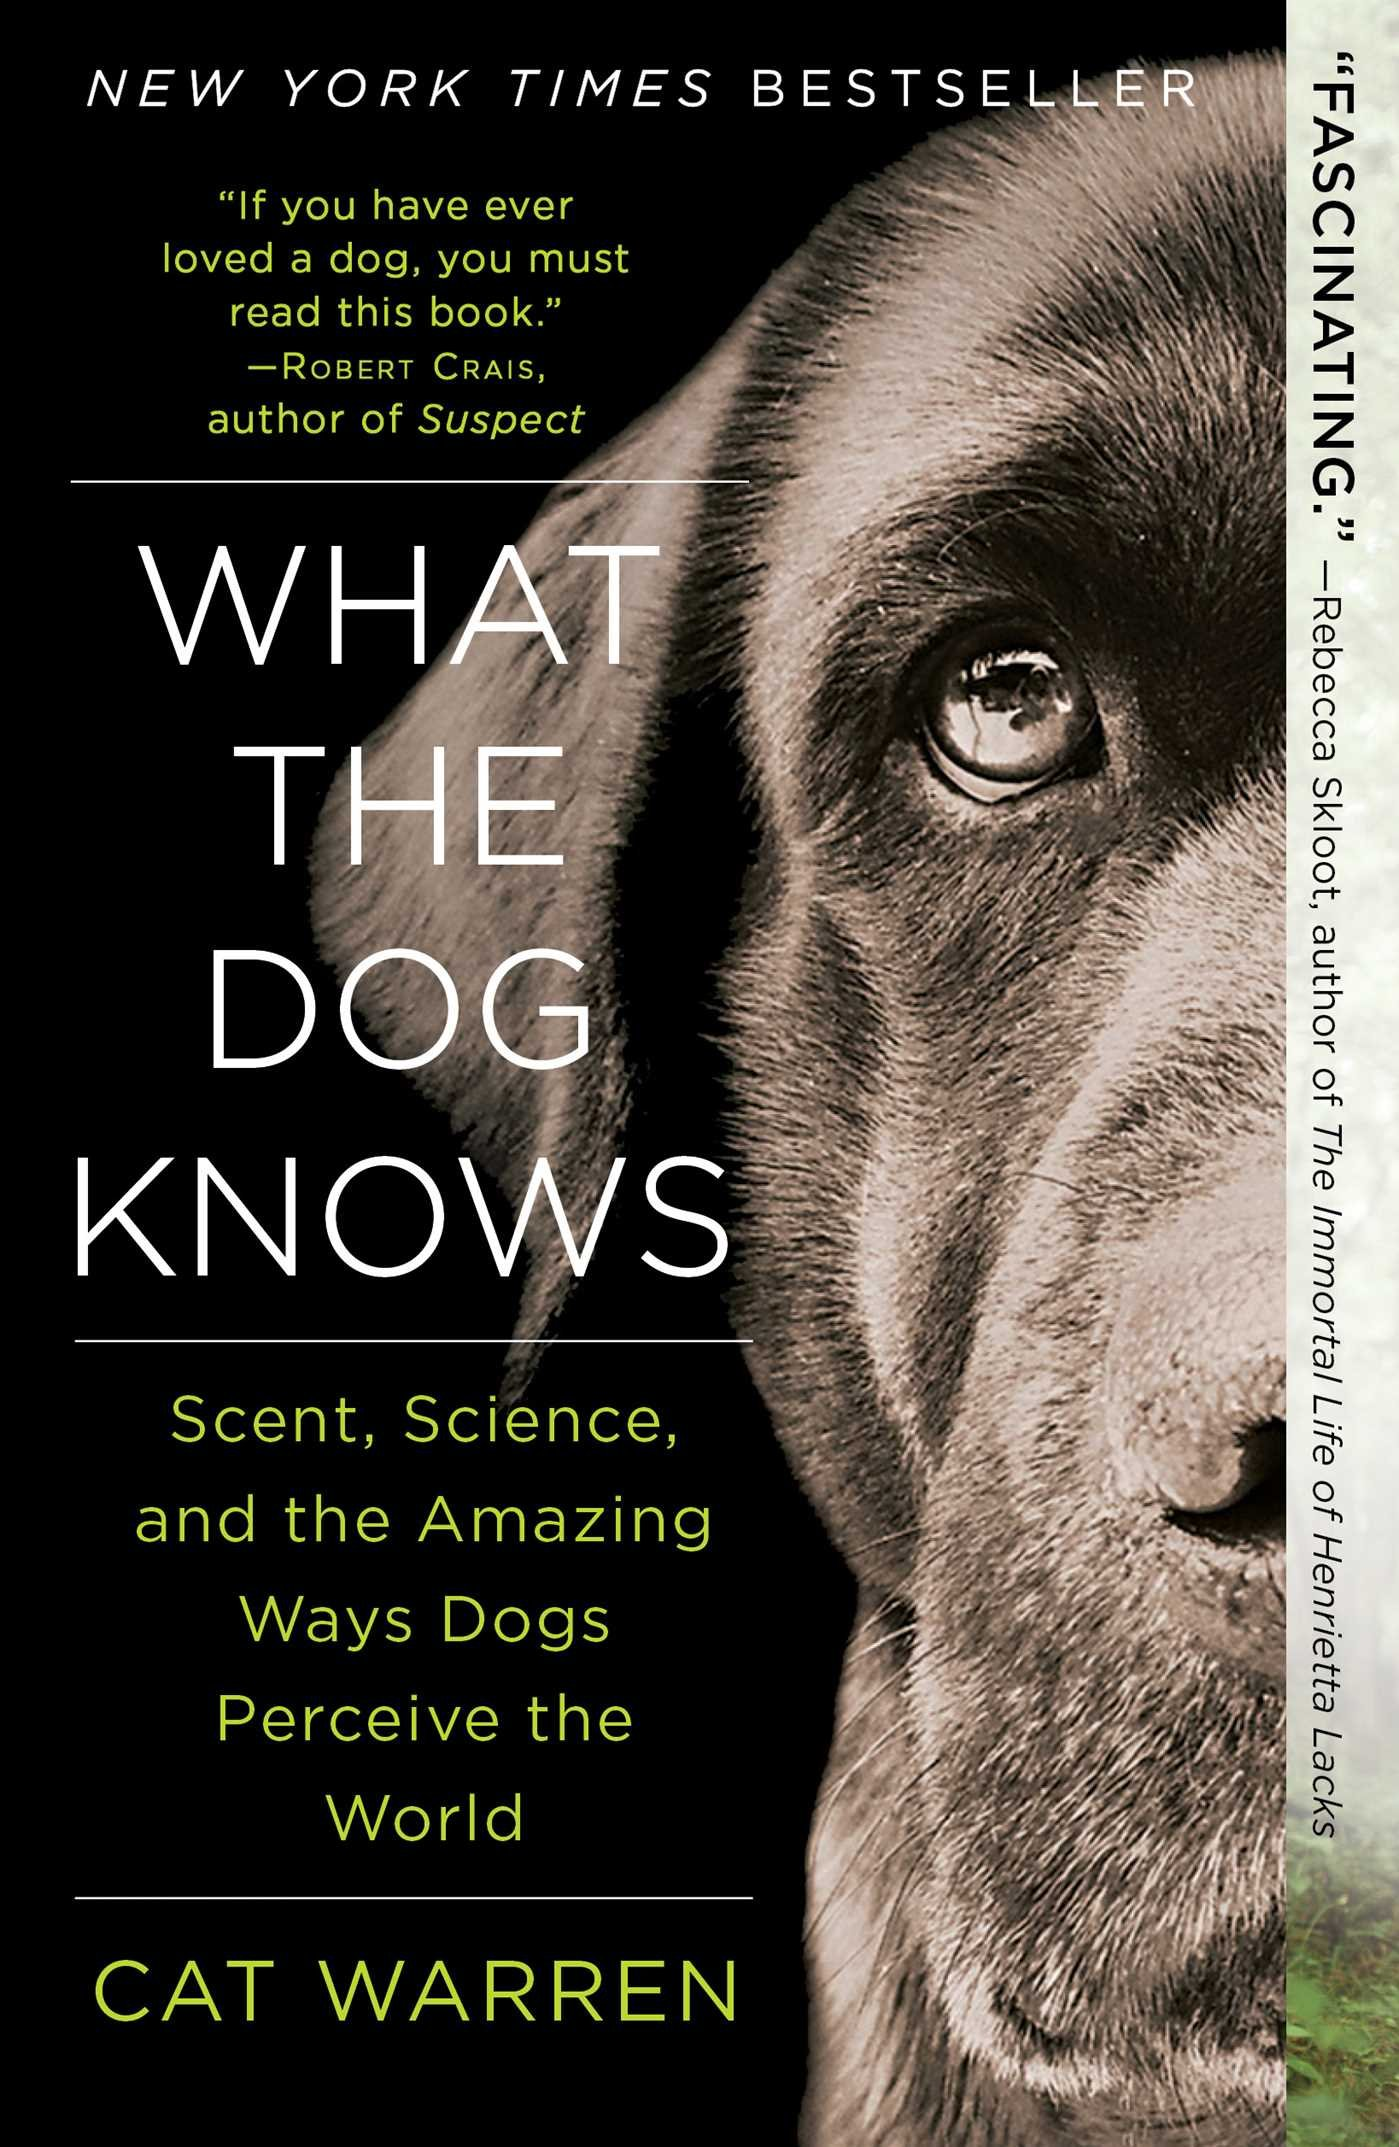 What The Dog Knows Scent Science And The Amazing Ways Dogs - Take look inside one amazing cat sanctuaries world